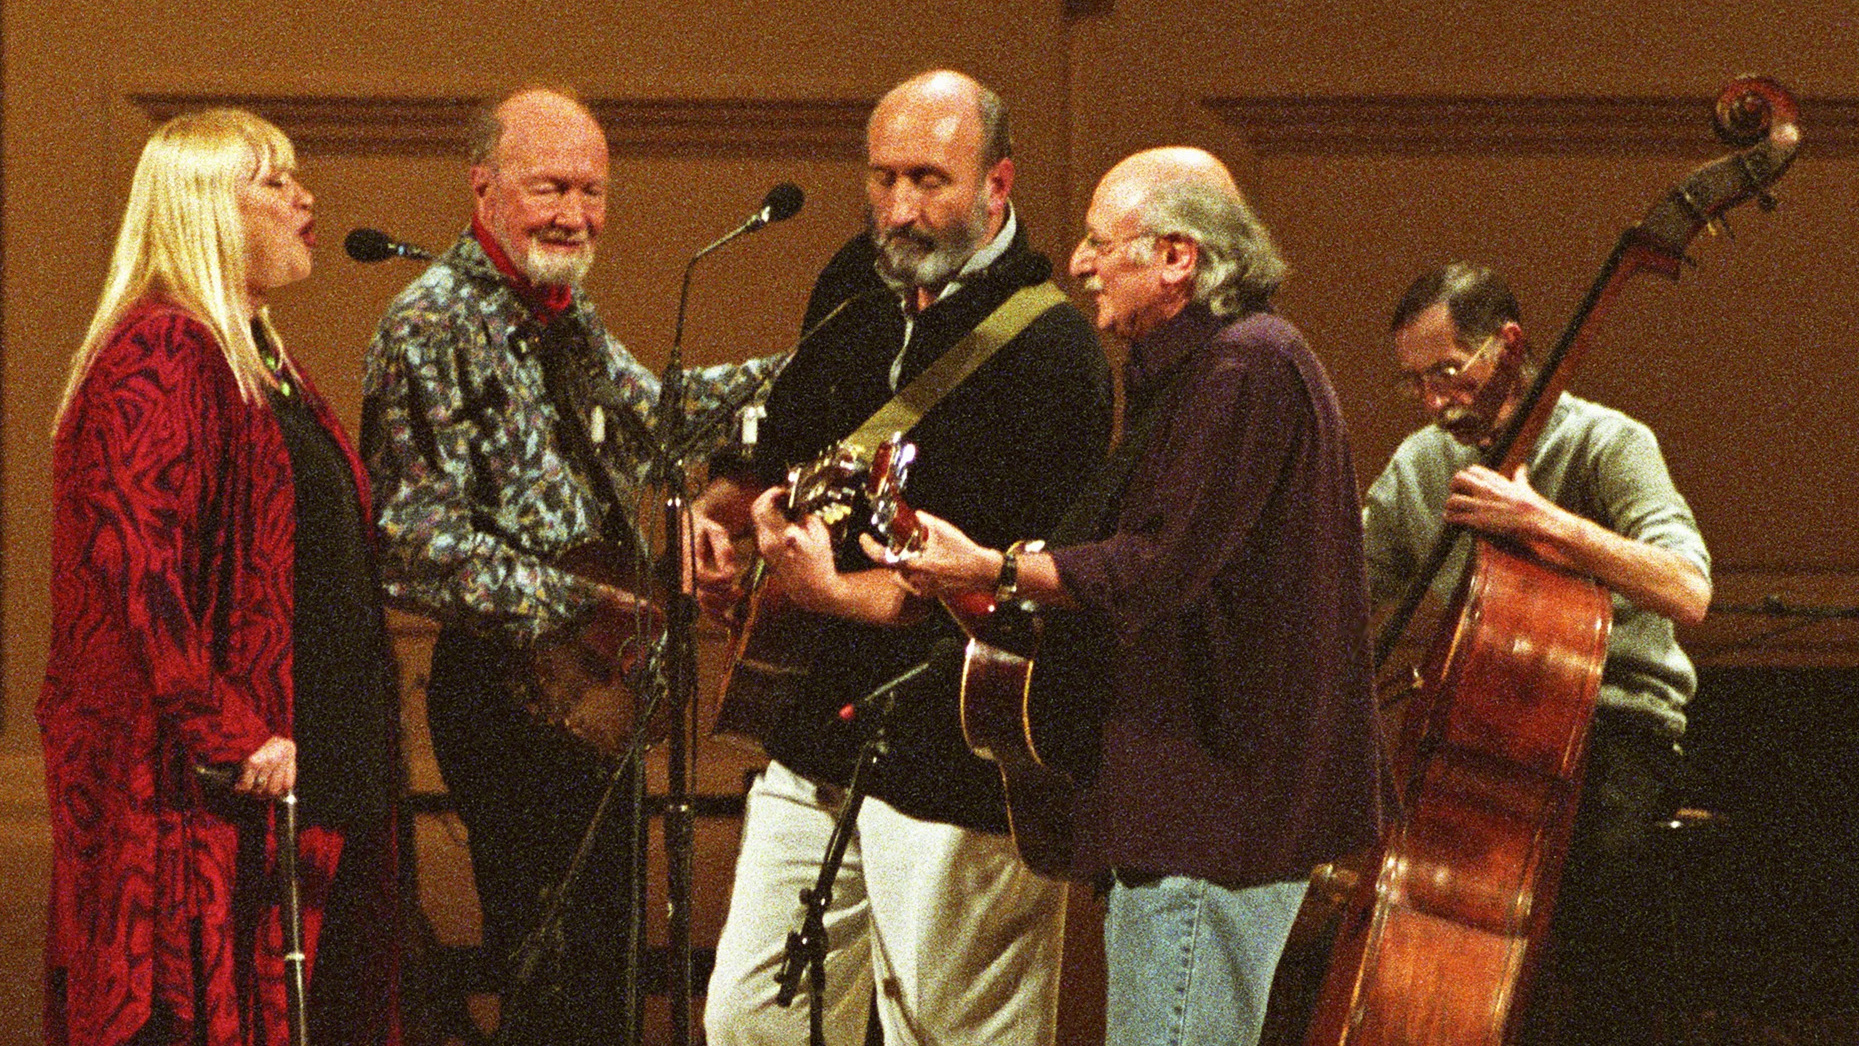 The Legends of Folk: Isn't This A Time!